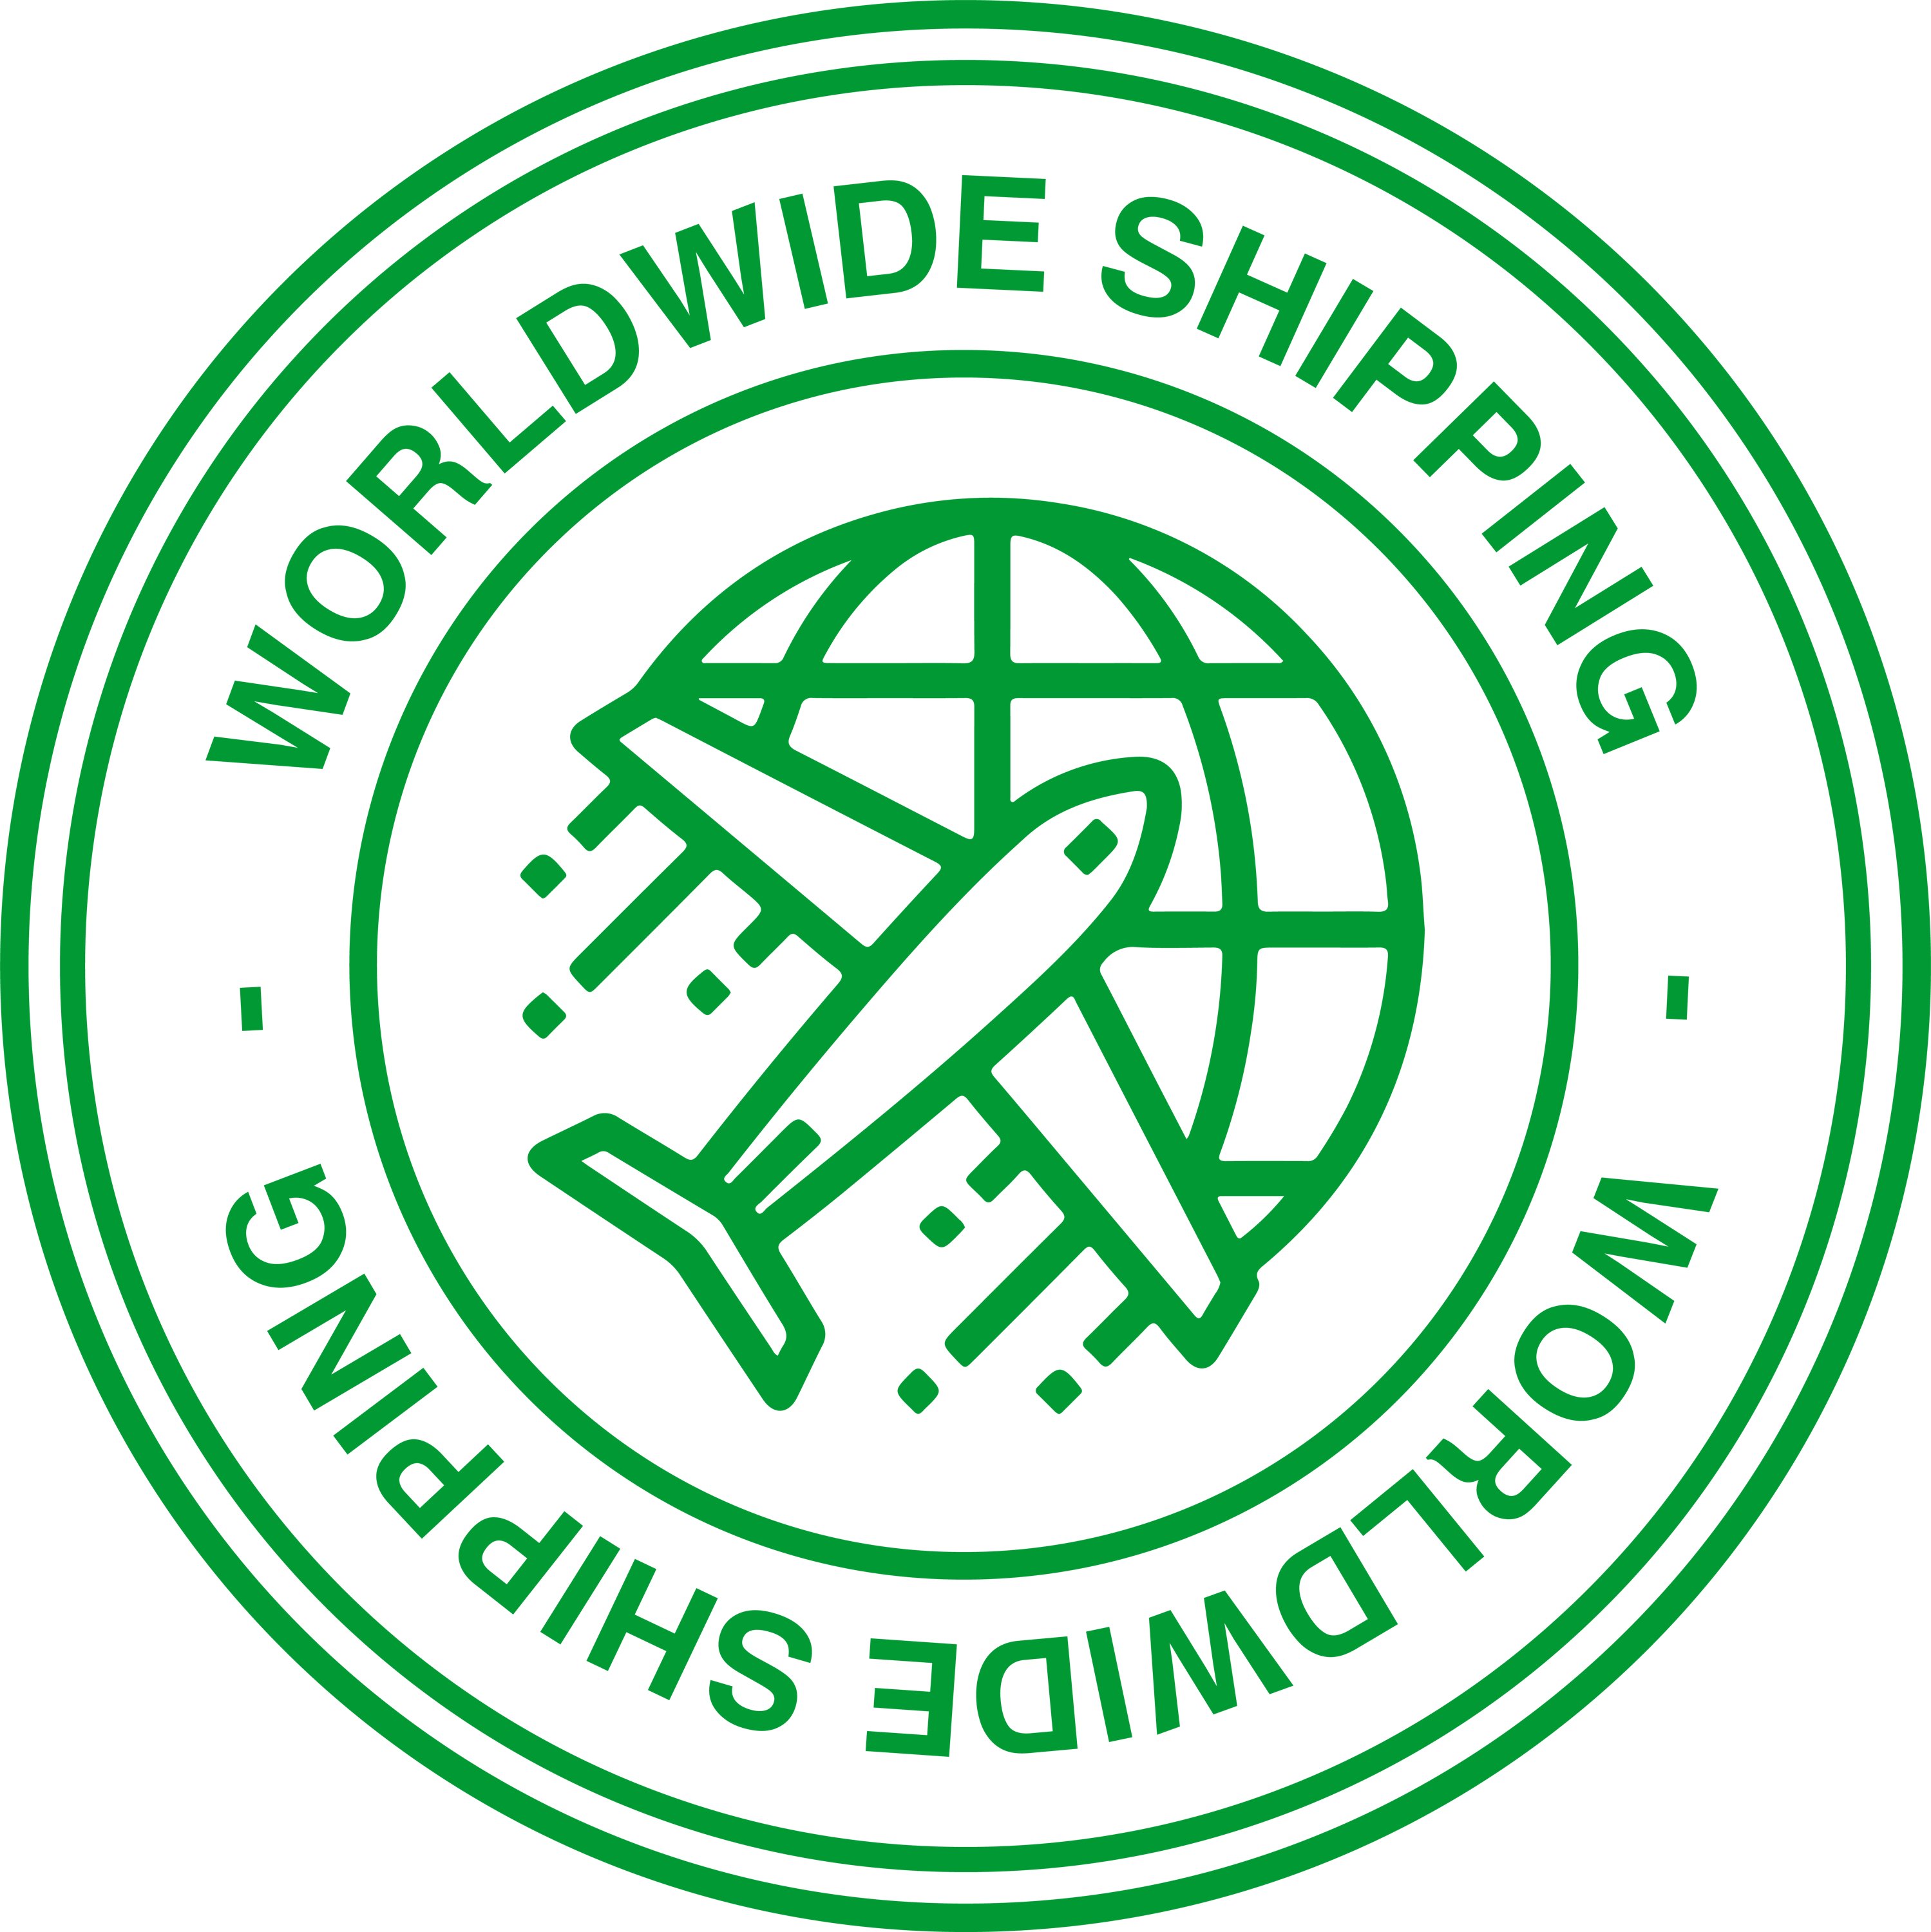 Wordwide Shipping